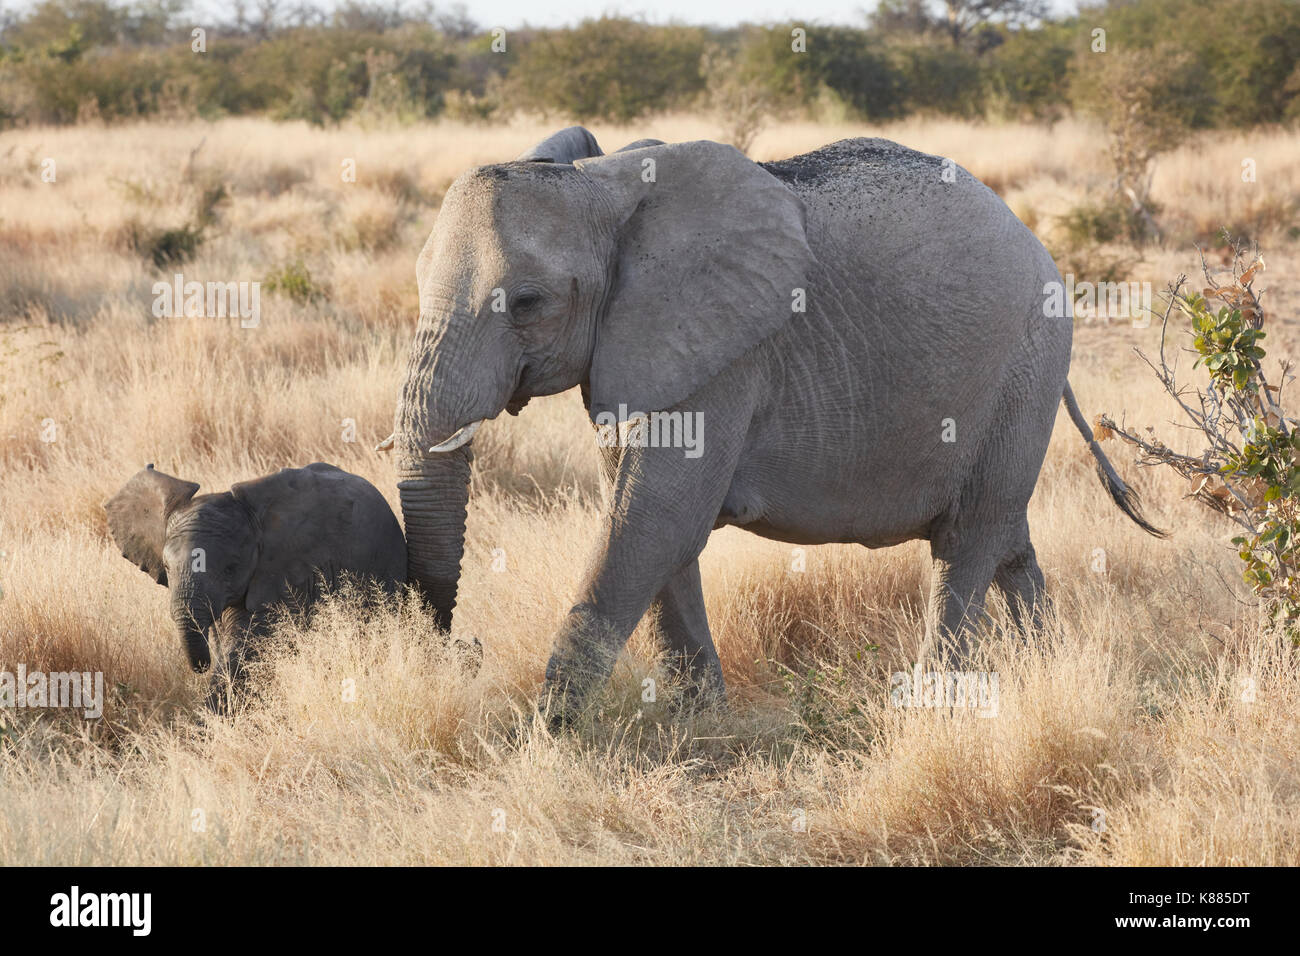 Two African elephants, Loxodonta africana, an adult and a young elephant walking in grassland. - Stock Image